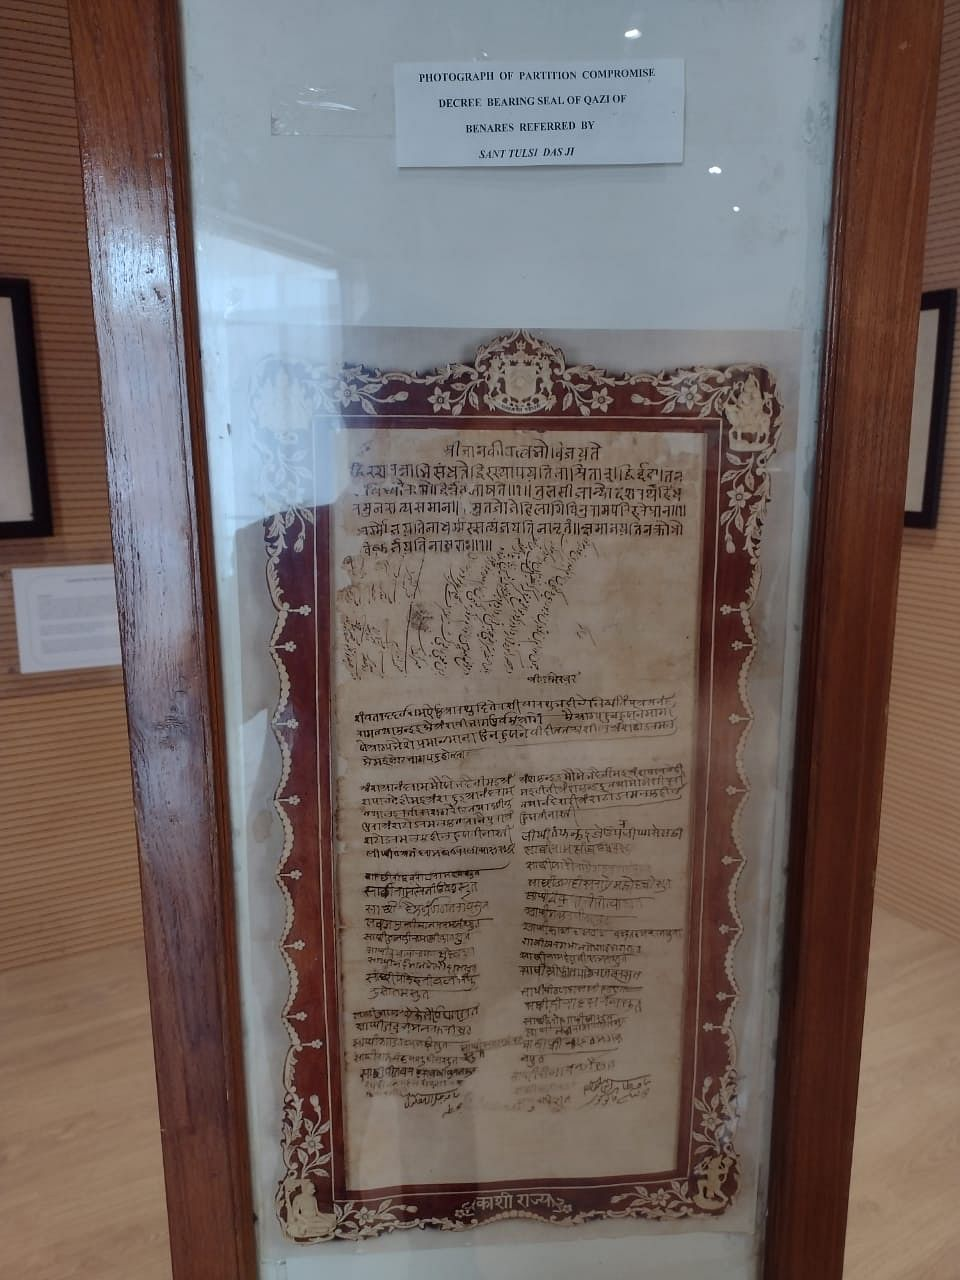 Photograph of a partition compromise decree bearing the seal of the qazi of Benares